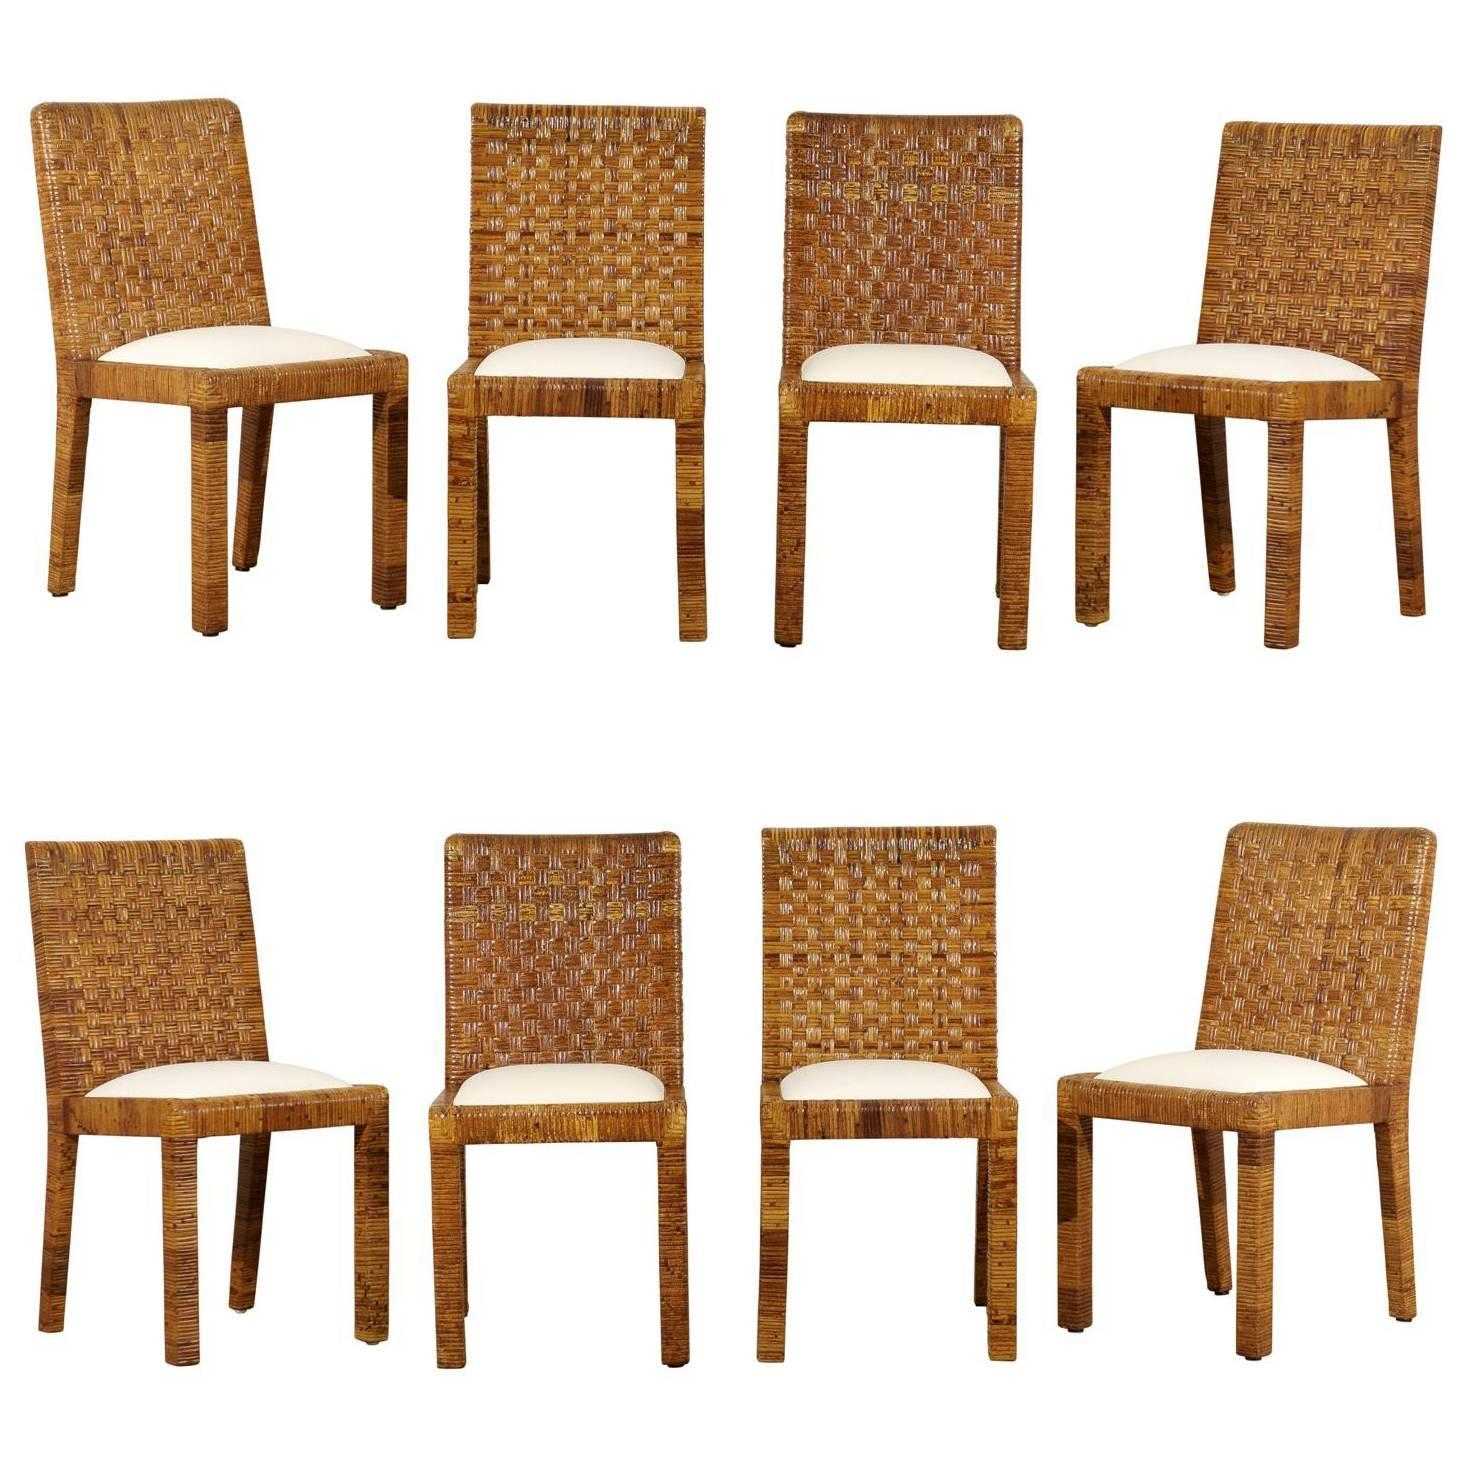 Restored Set of Eight Vintage Rattan Dining Chairs by Bielecky ...